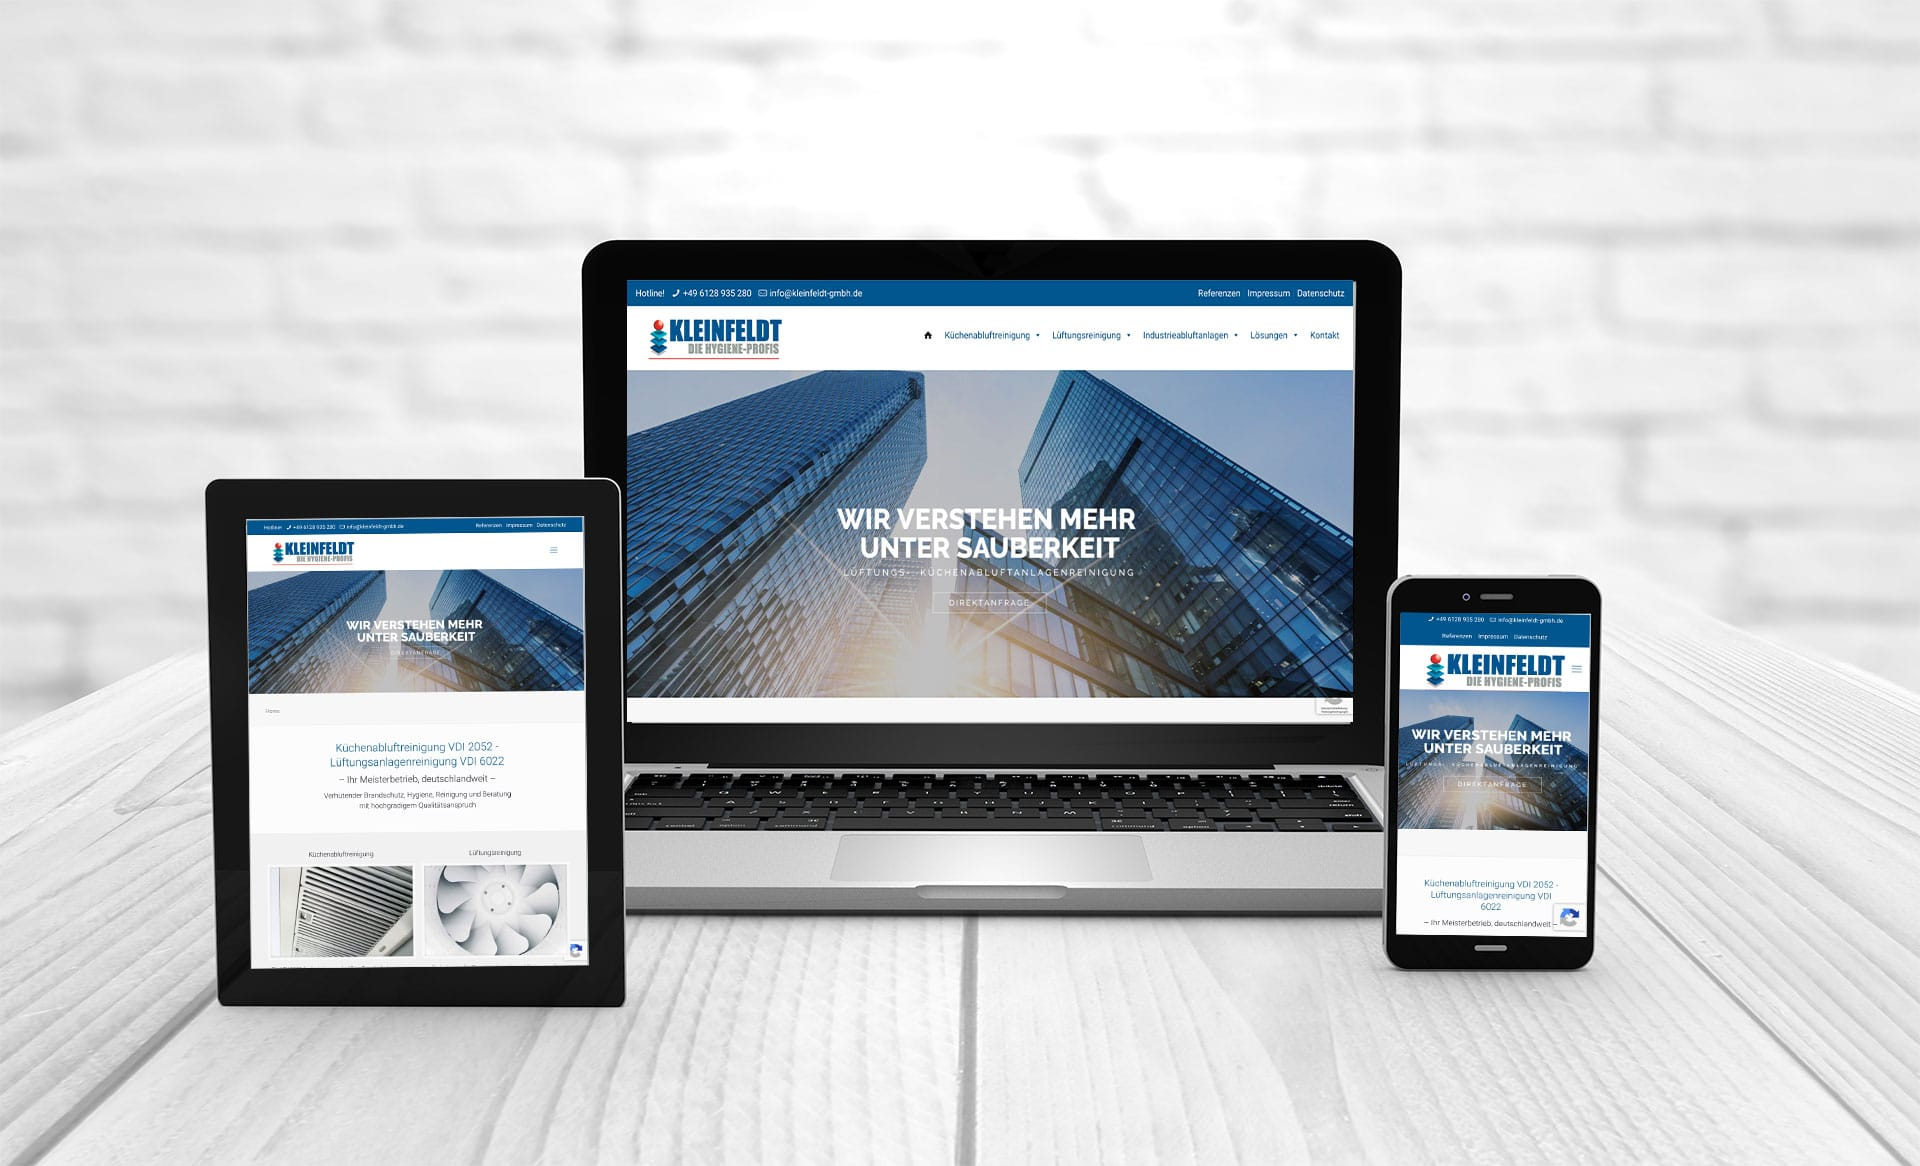 Professional web design, references Kleinfeldt kitchen exhaust air cleaning